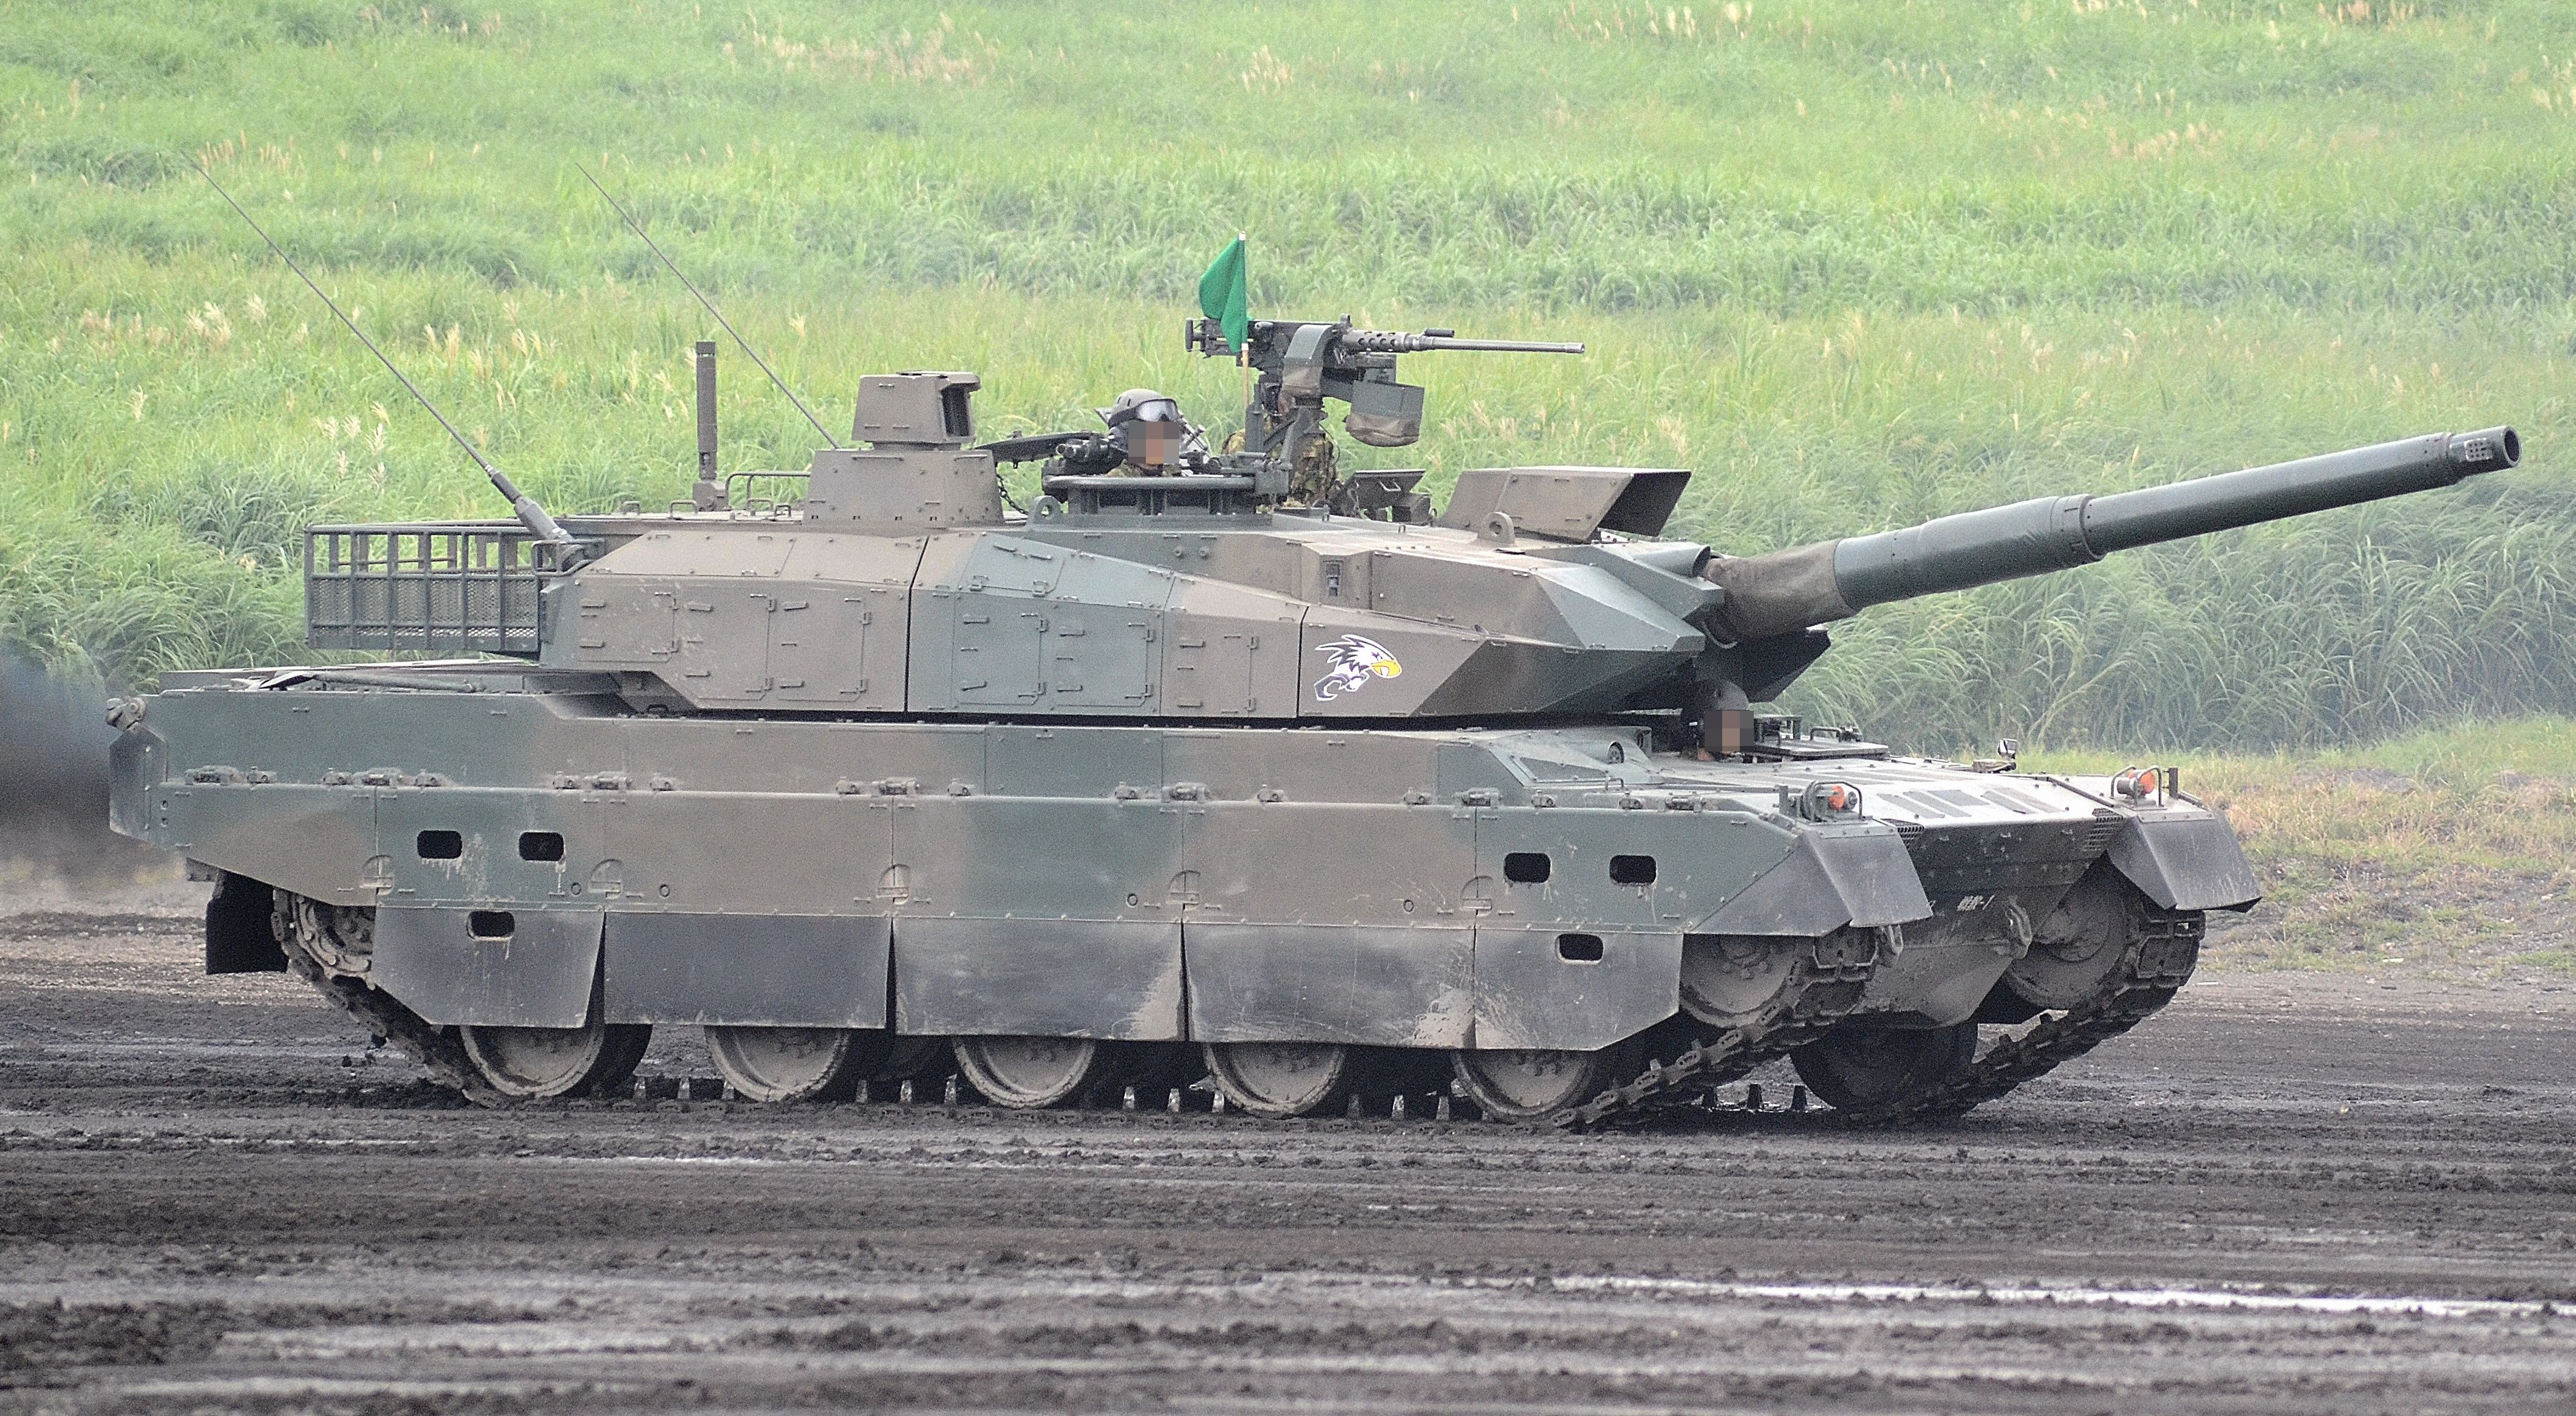 9ac68db3b8d7 The Type 10 is a 4th generation main battle tank of JSDF produced by  Mitsubishi Heavy Industries for the Japanese Ground Self Defense Force.